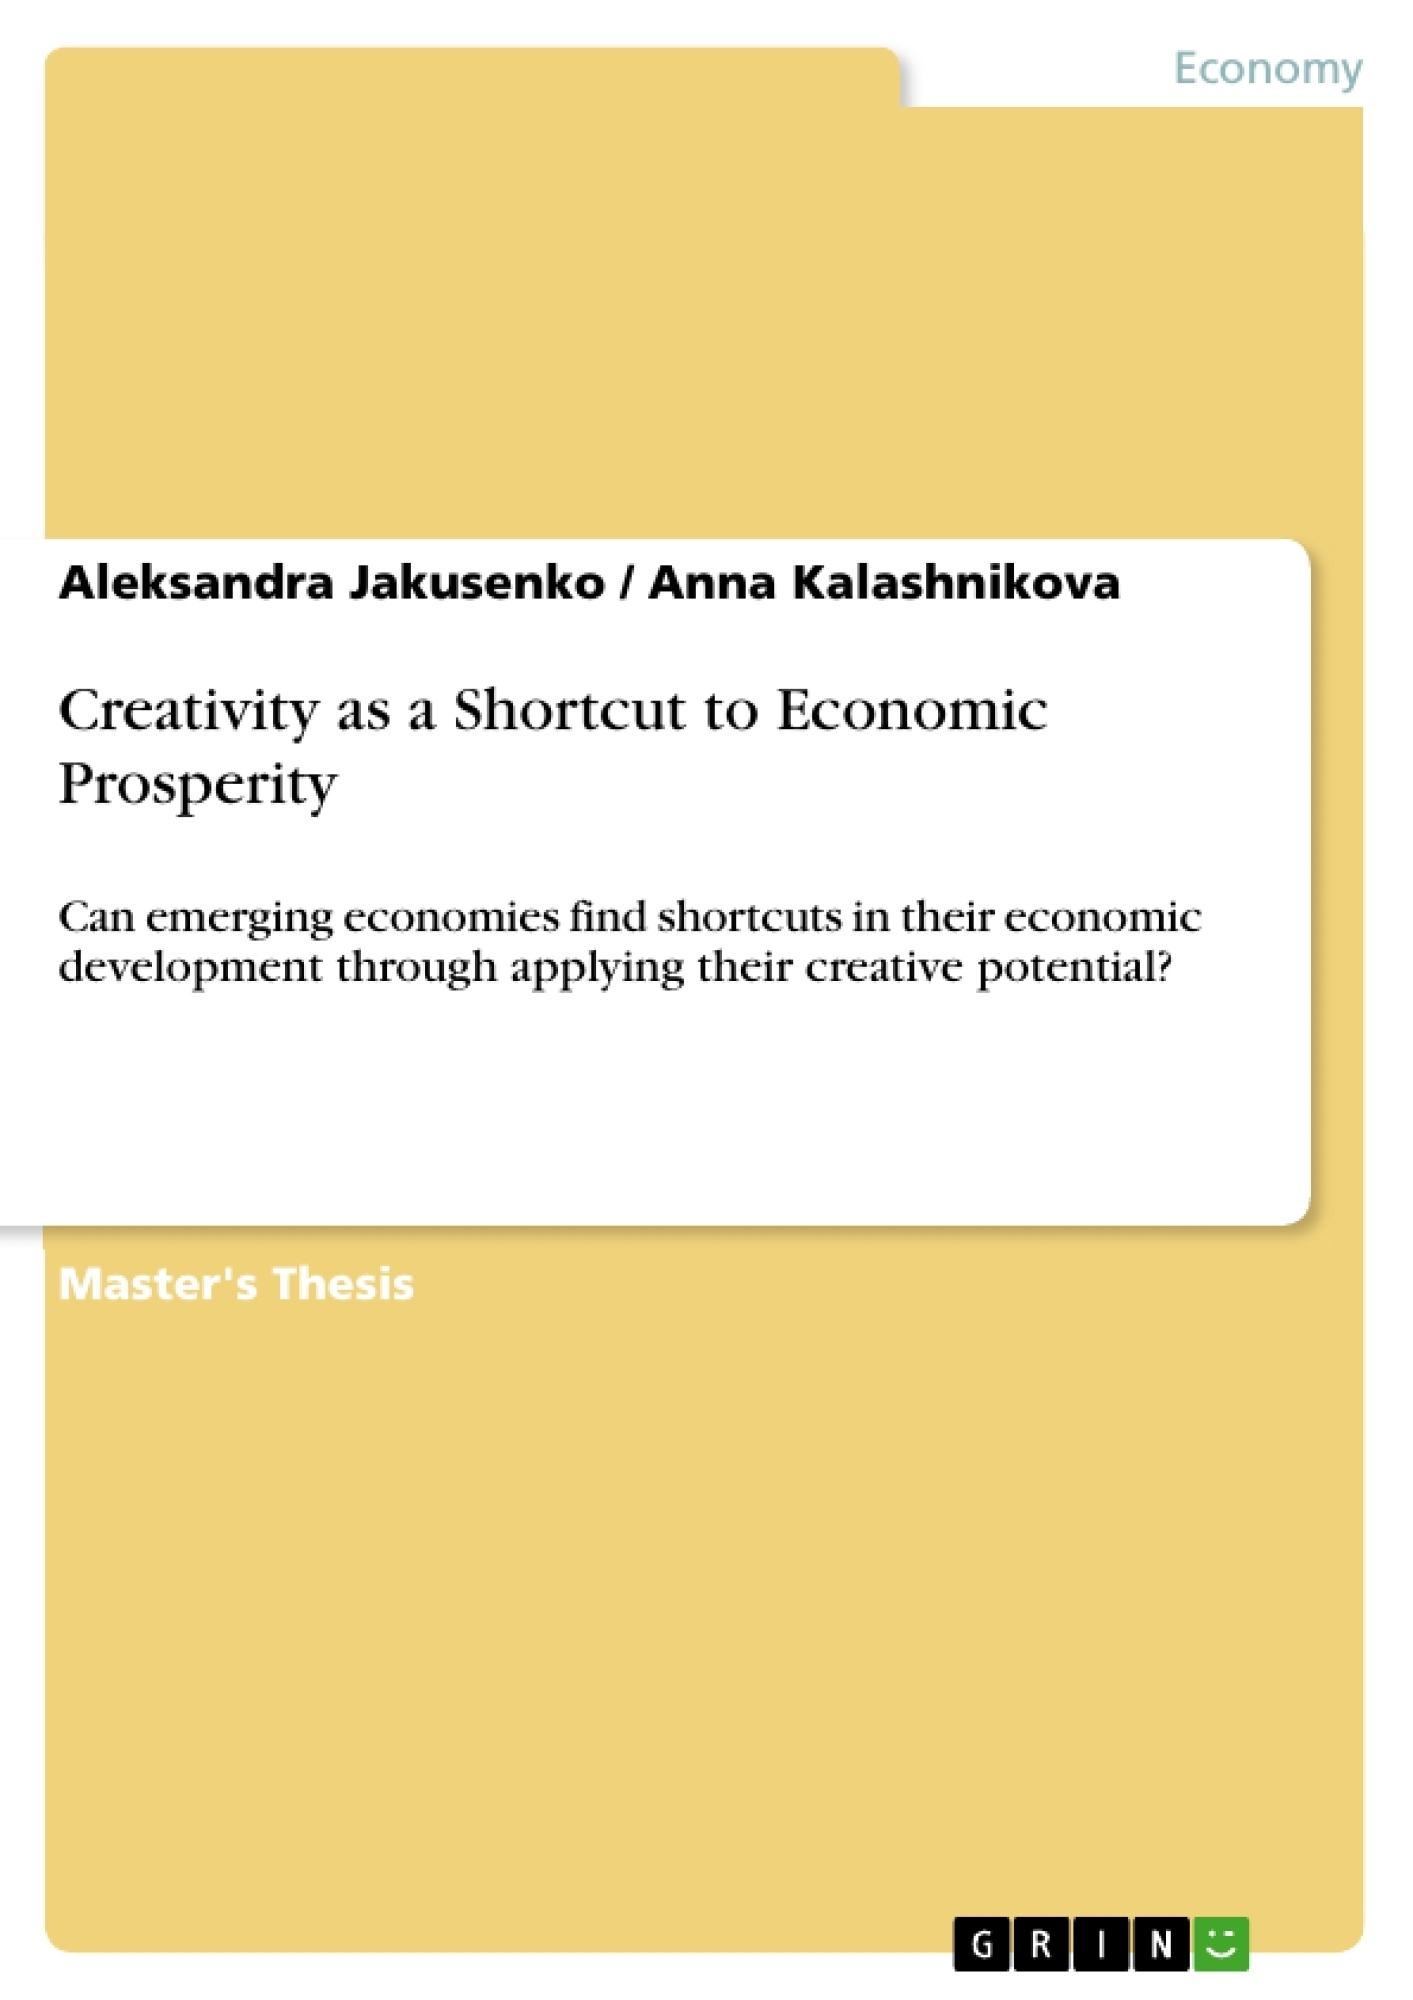 Title: Creativity as a Shortcut to Economic Prosperity